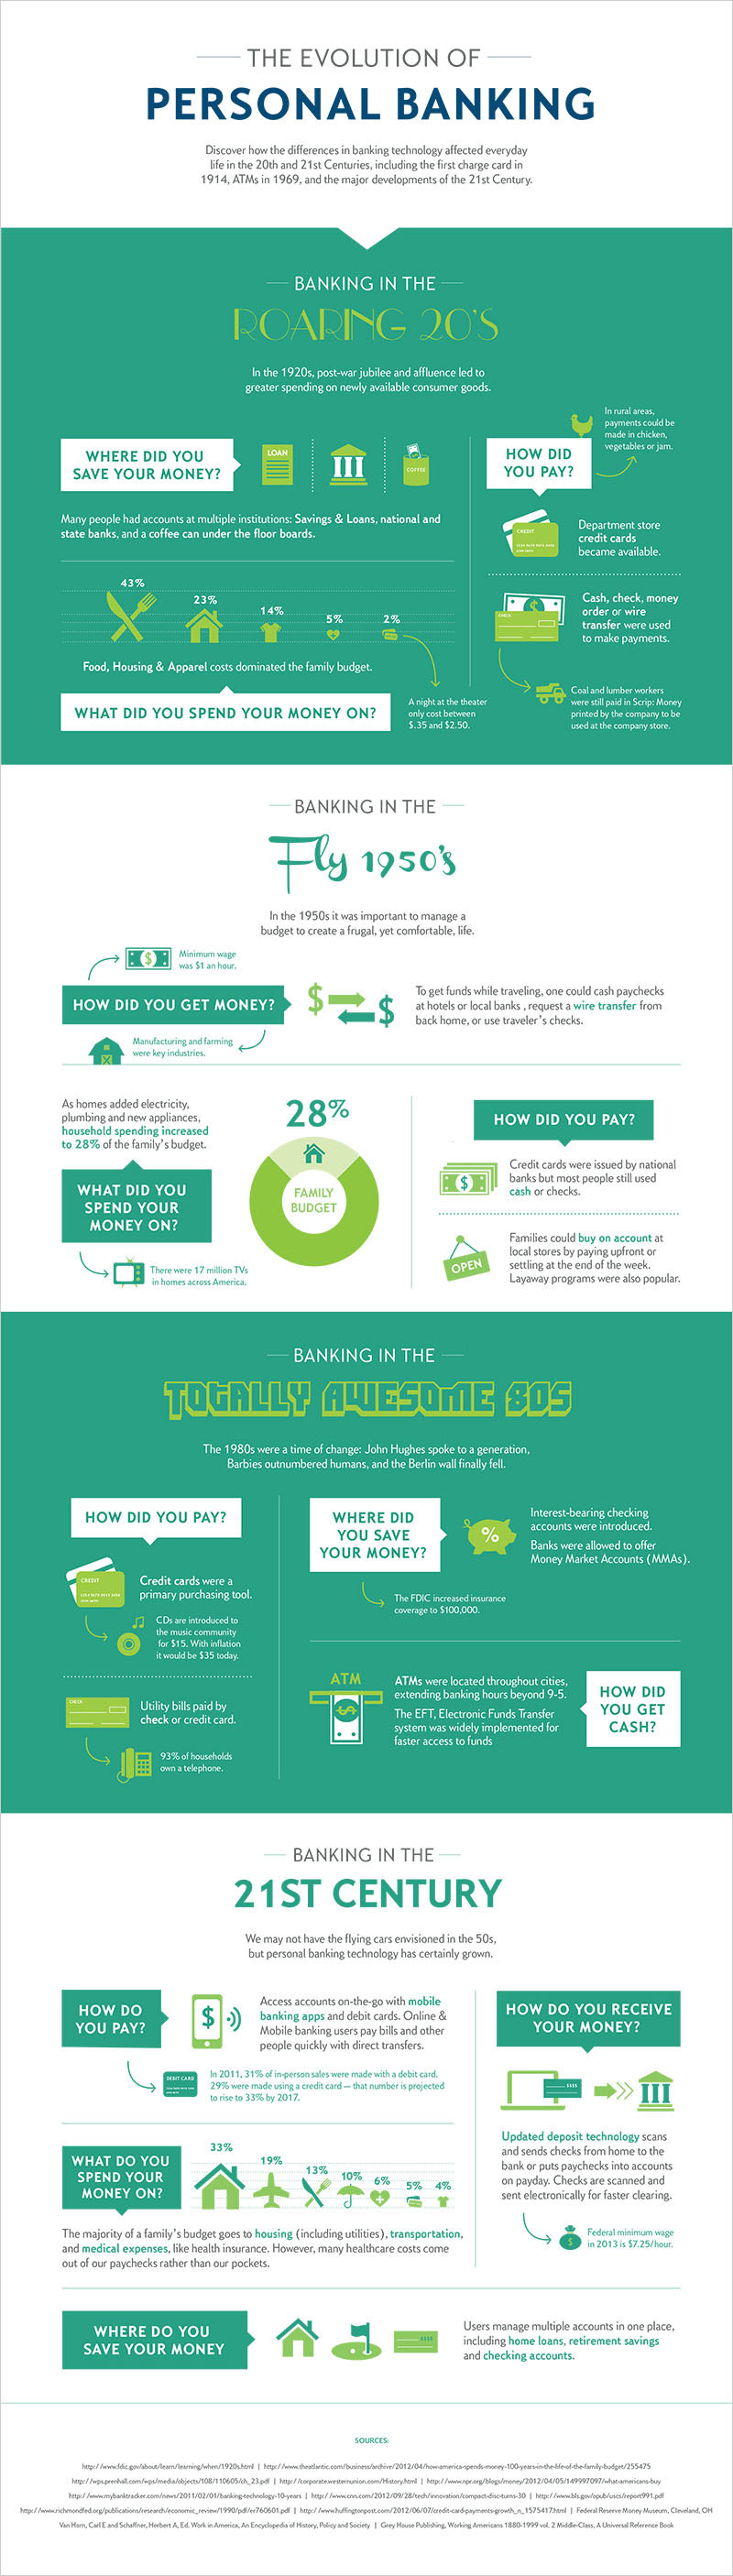 The Evolution of Personal Banking from Citizens Bank